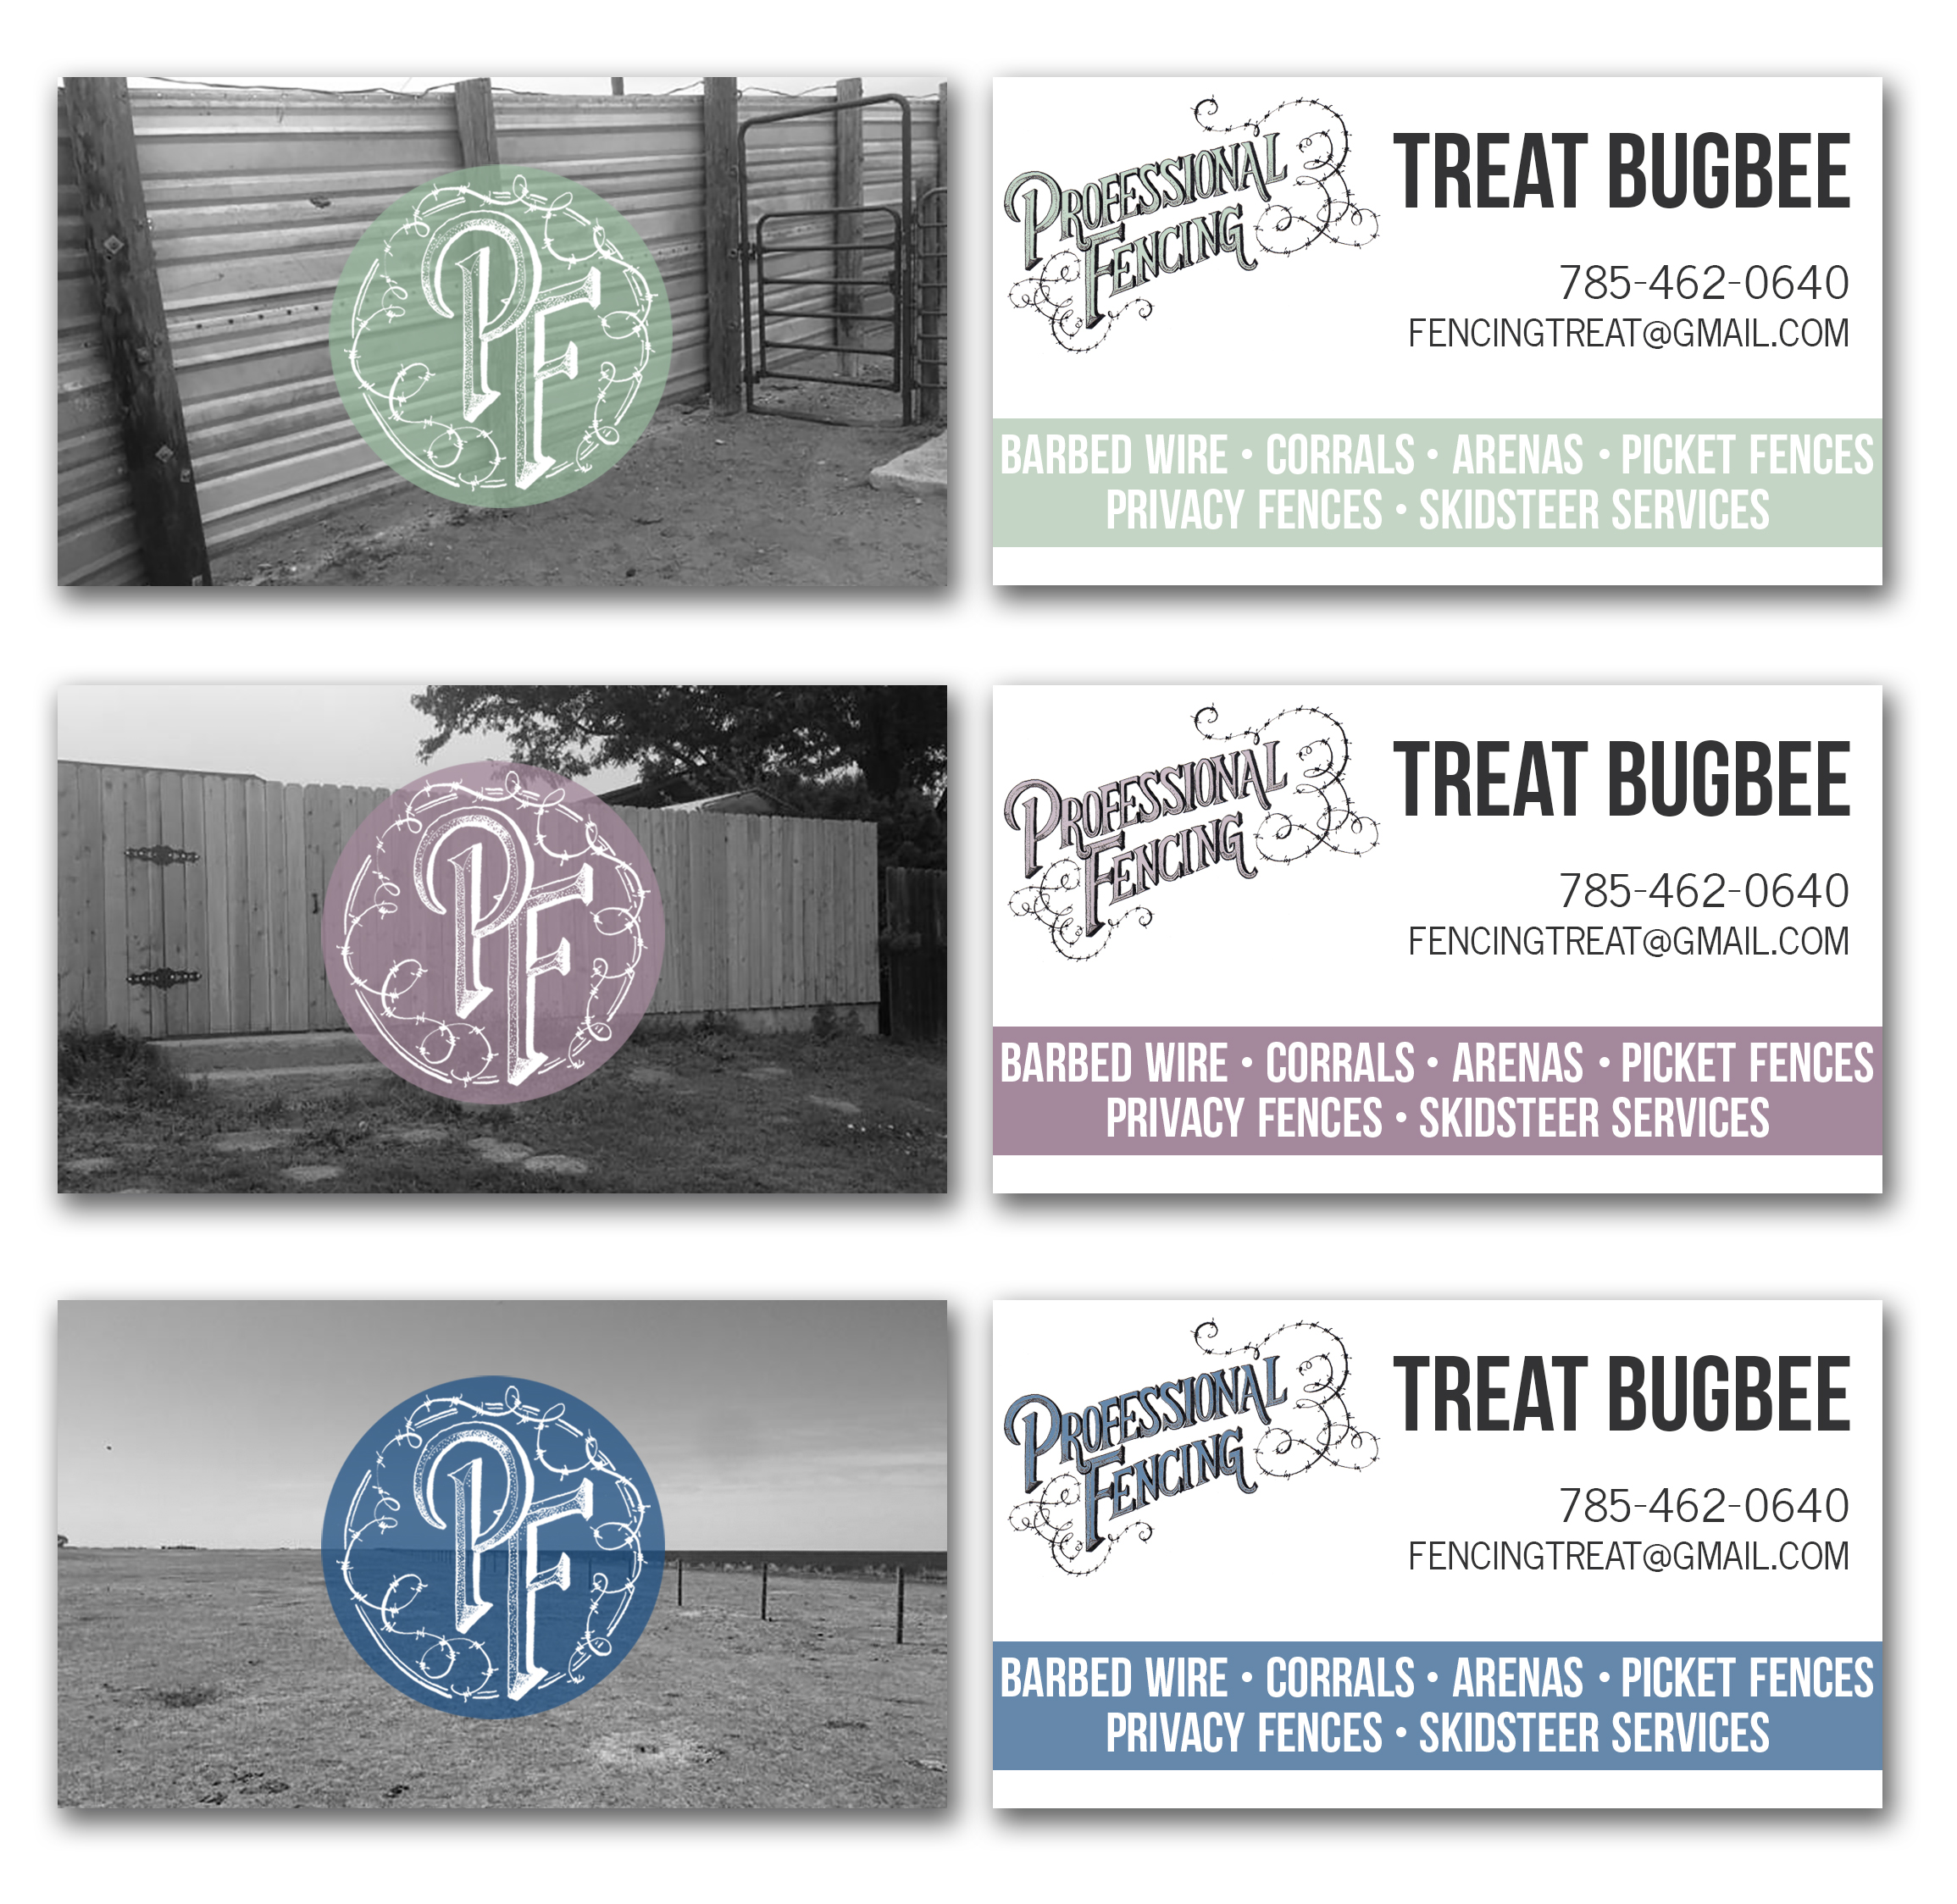 Professional Fencing Business Cards | The Postman's Knock